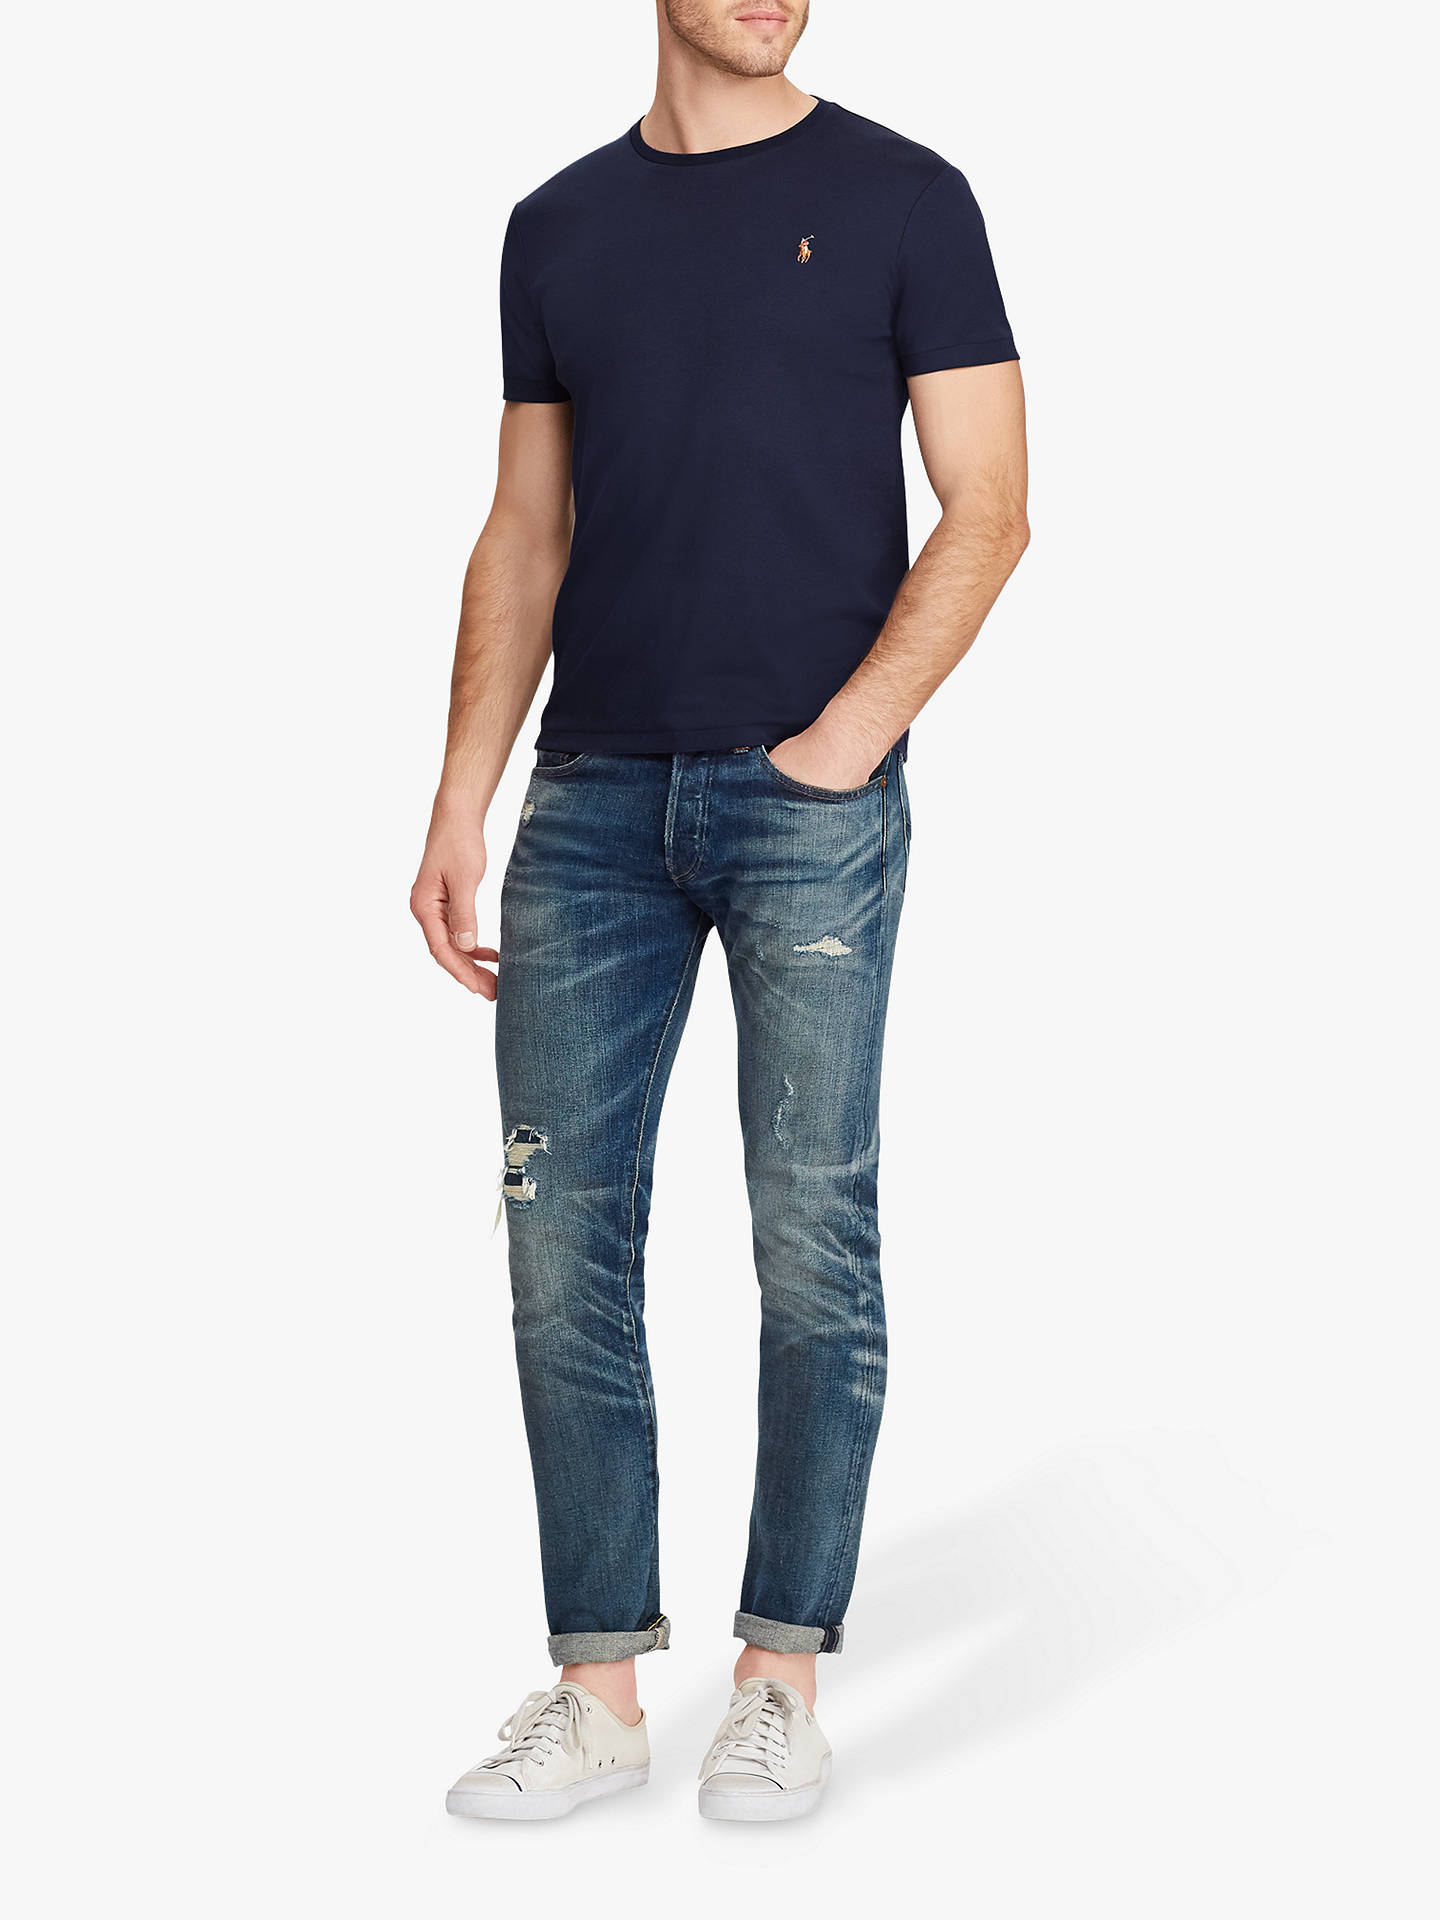 BuyPolo Ralph Lauren Custom Slim Fit T-Shirt, French Navy, XL Online at johnlewis.com